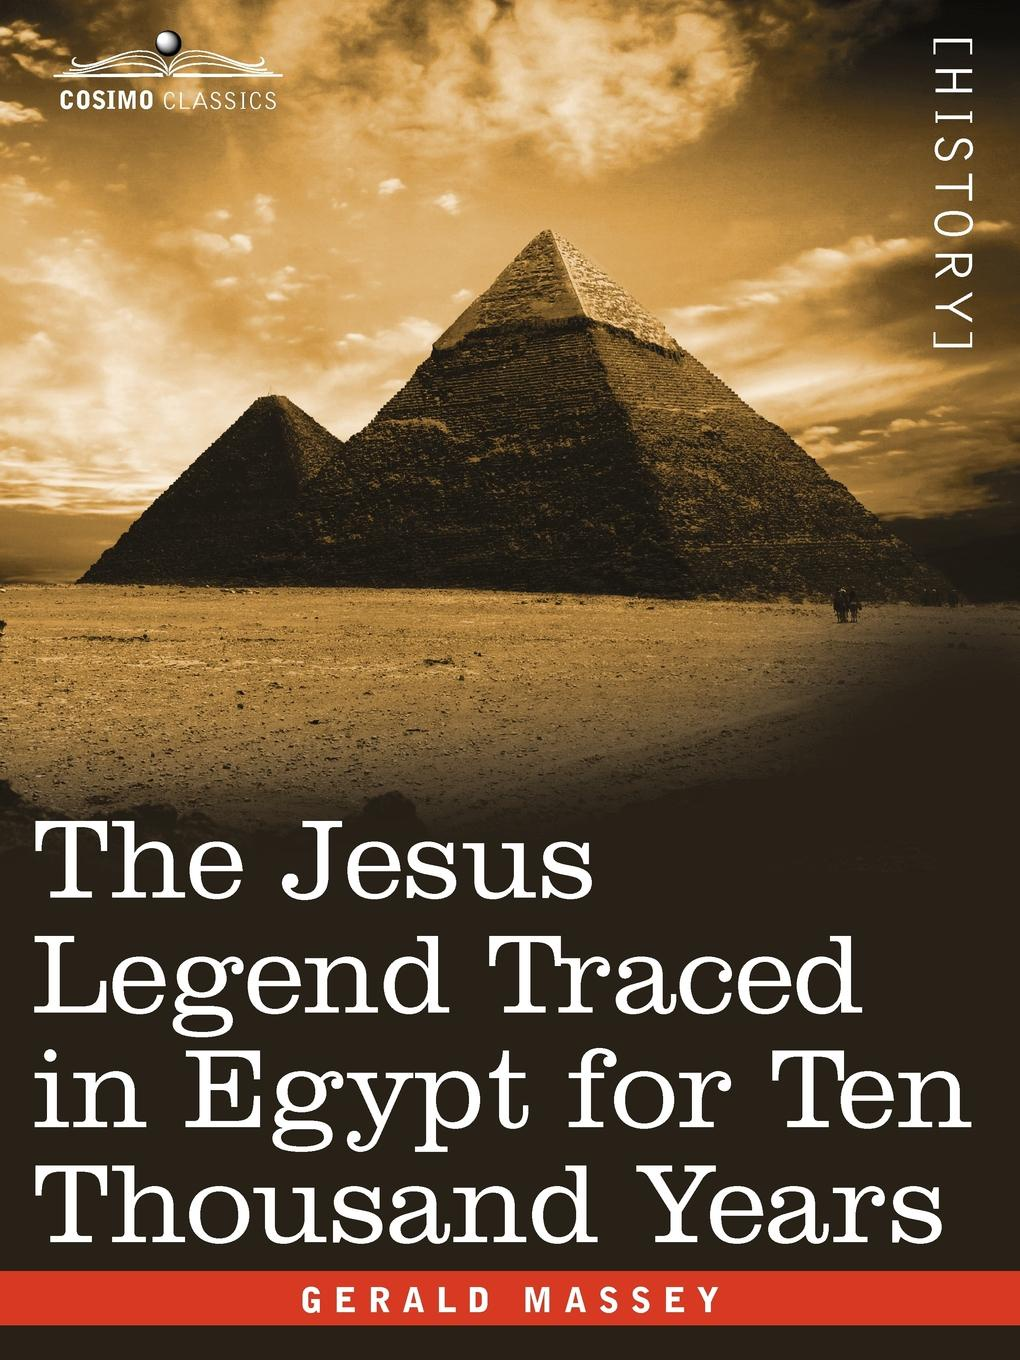 Gerald Massey The Jesus Legend Traced in Egypt for Ten Thousand Years